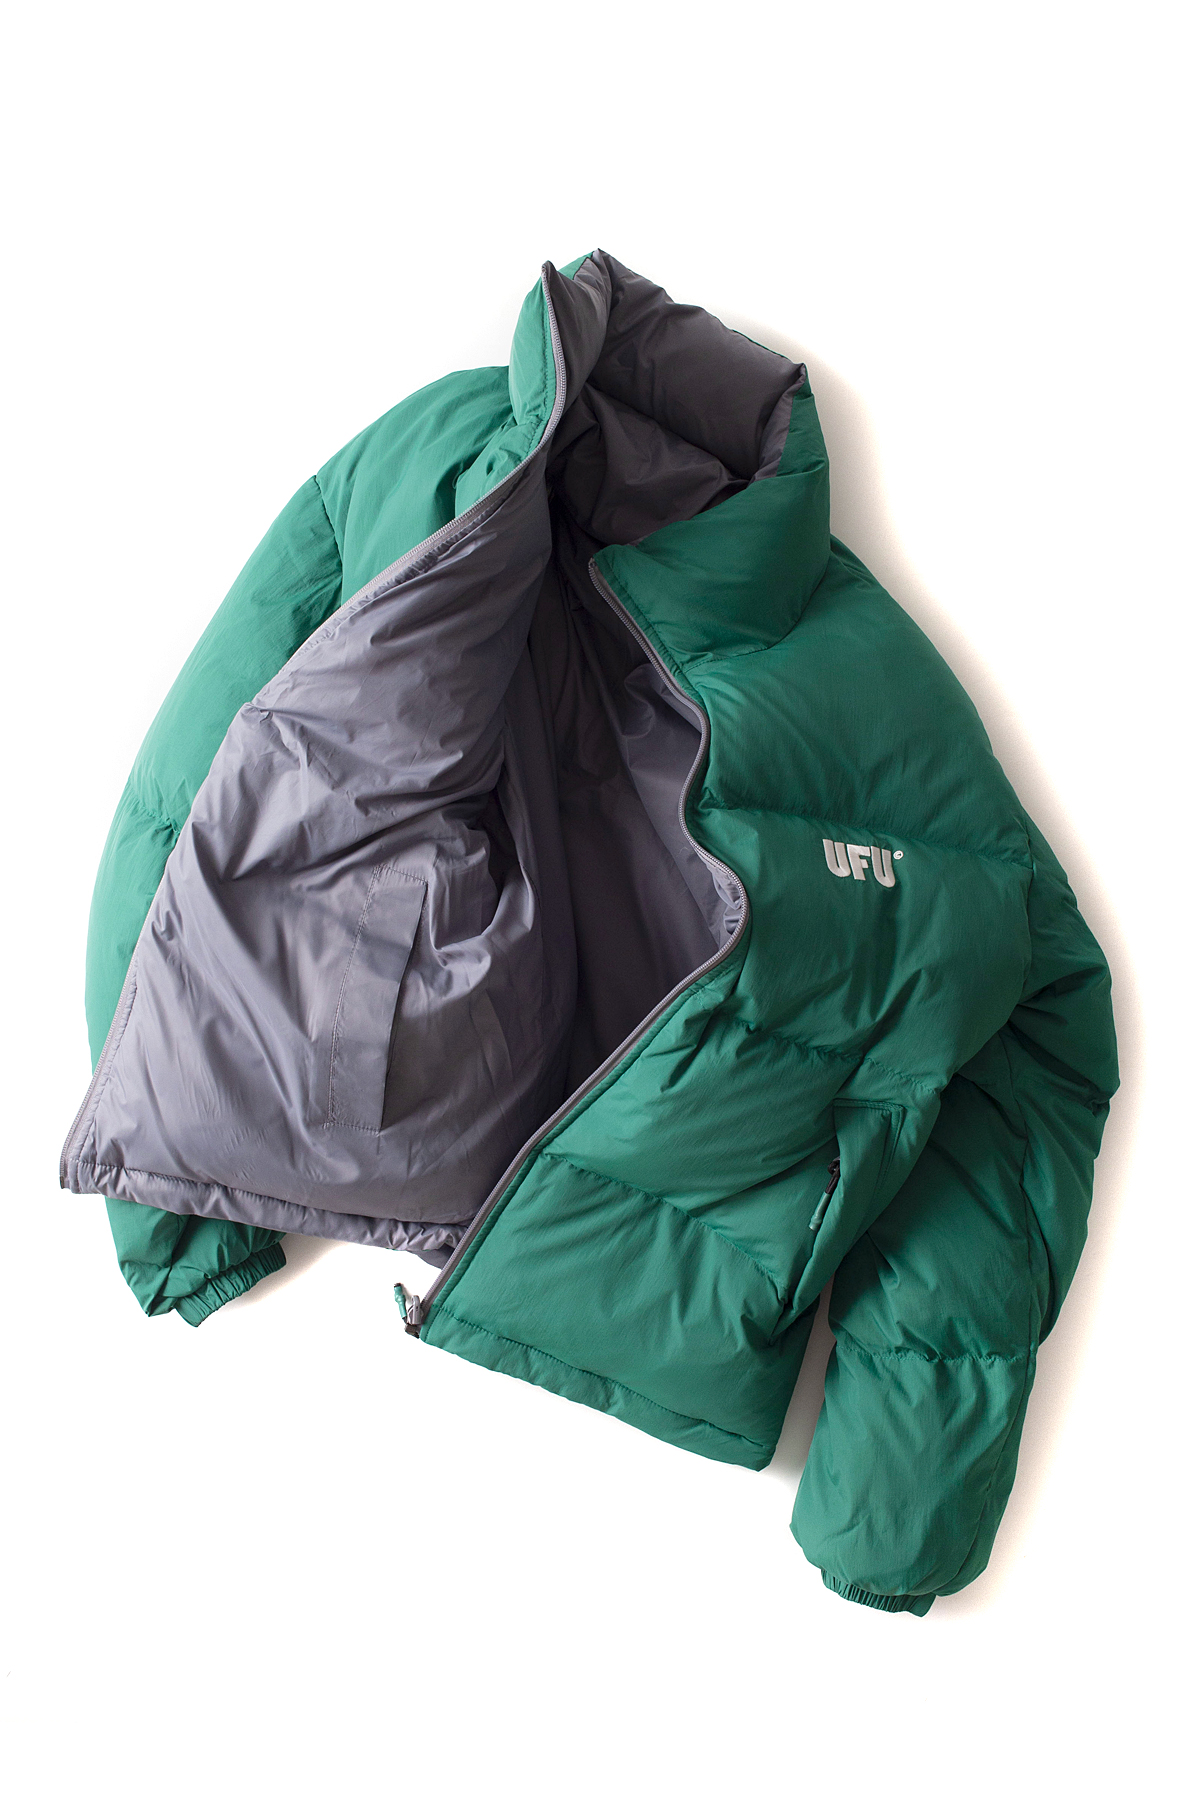 USED FUTURE : Sup Puffer (Green)